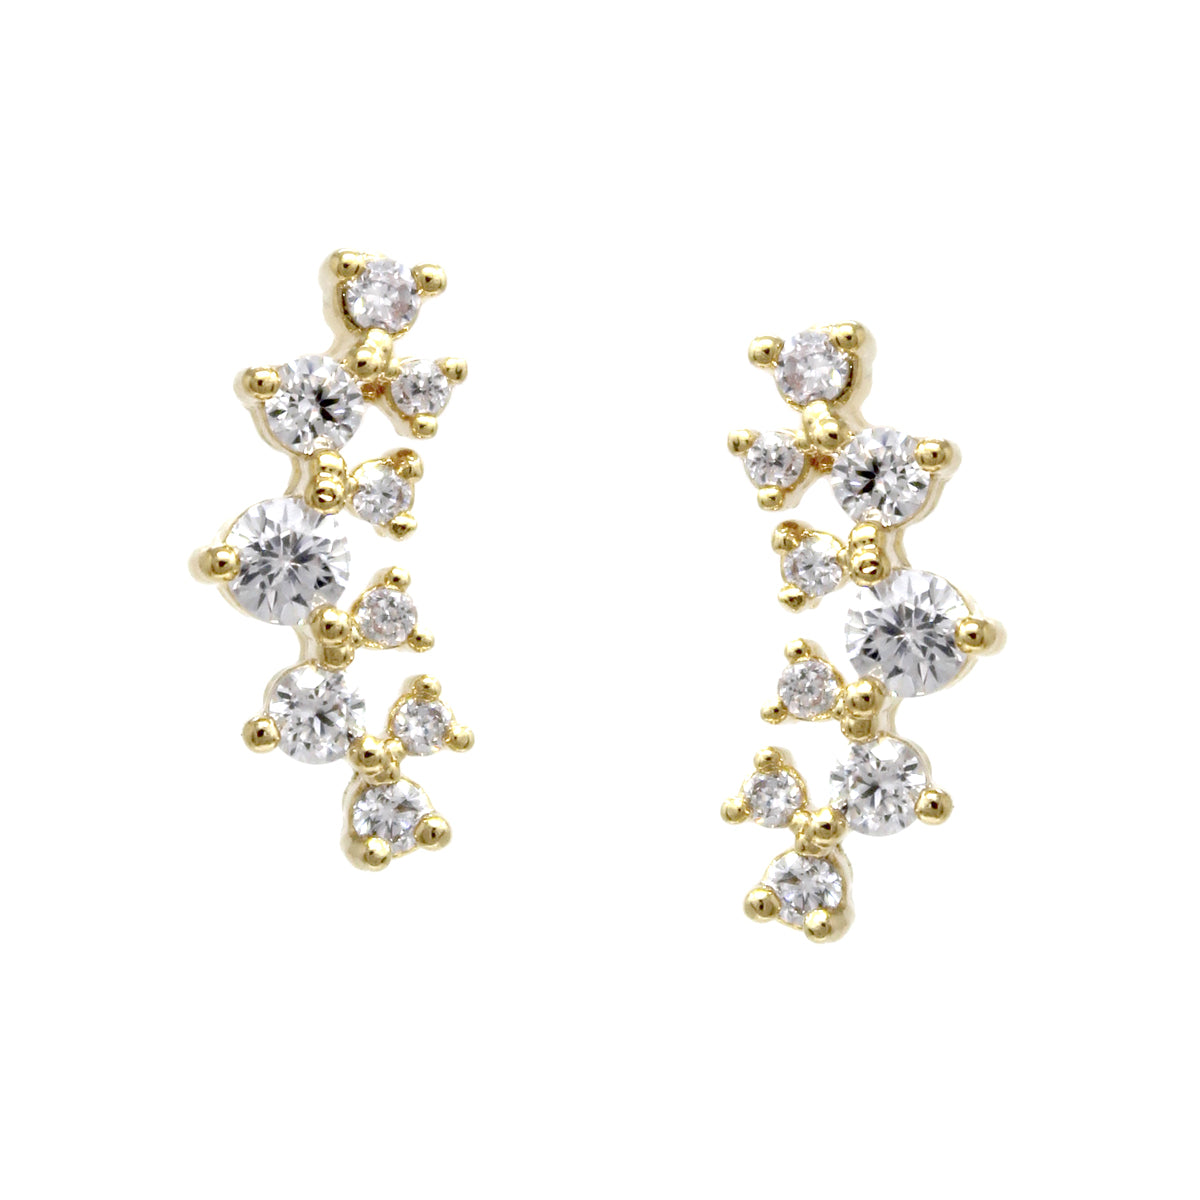 Cubic Zirconia Pave Stud Earrings